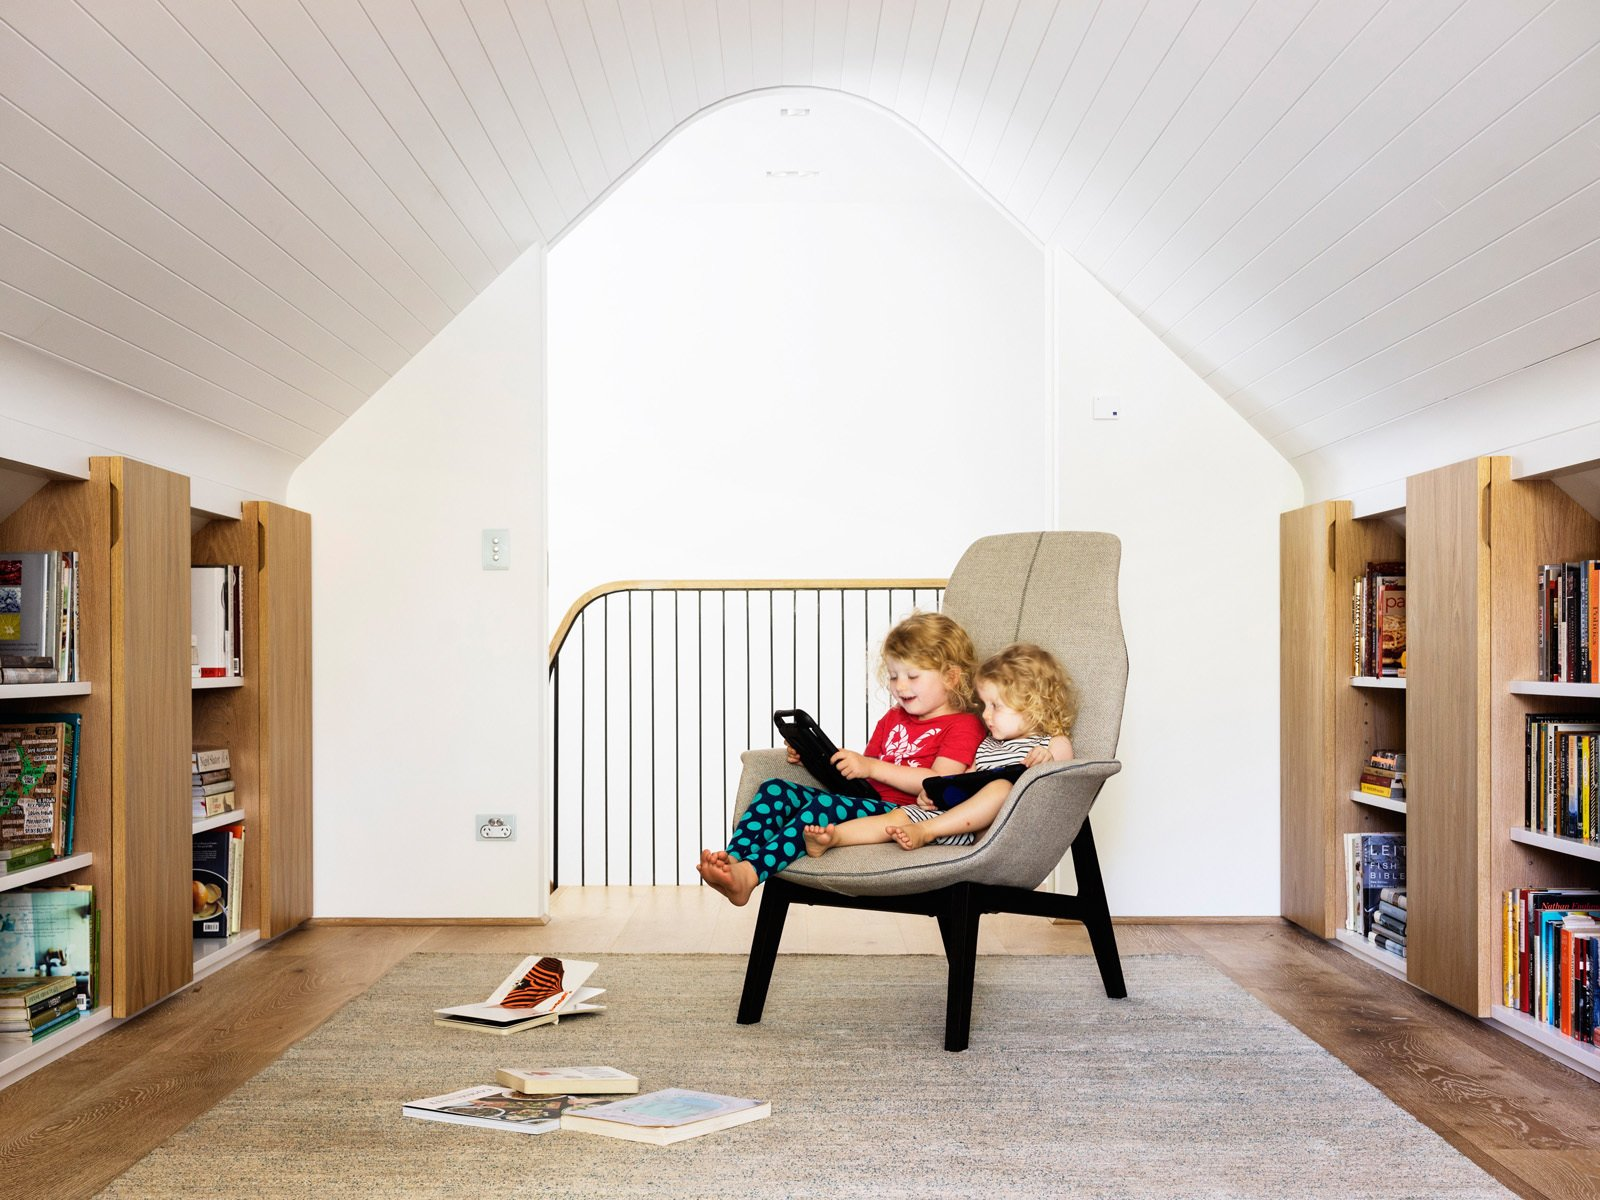 Initially, the attic room was going to be a study for the hard working parents but the girls appropriated it as their wet weather playroom. © Justin Alexander